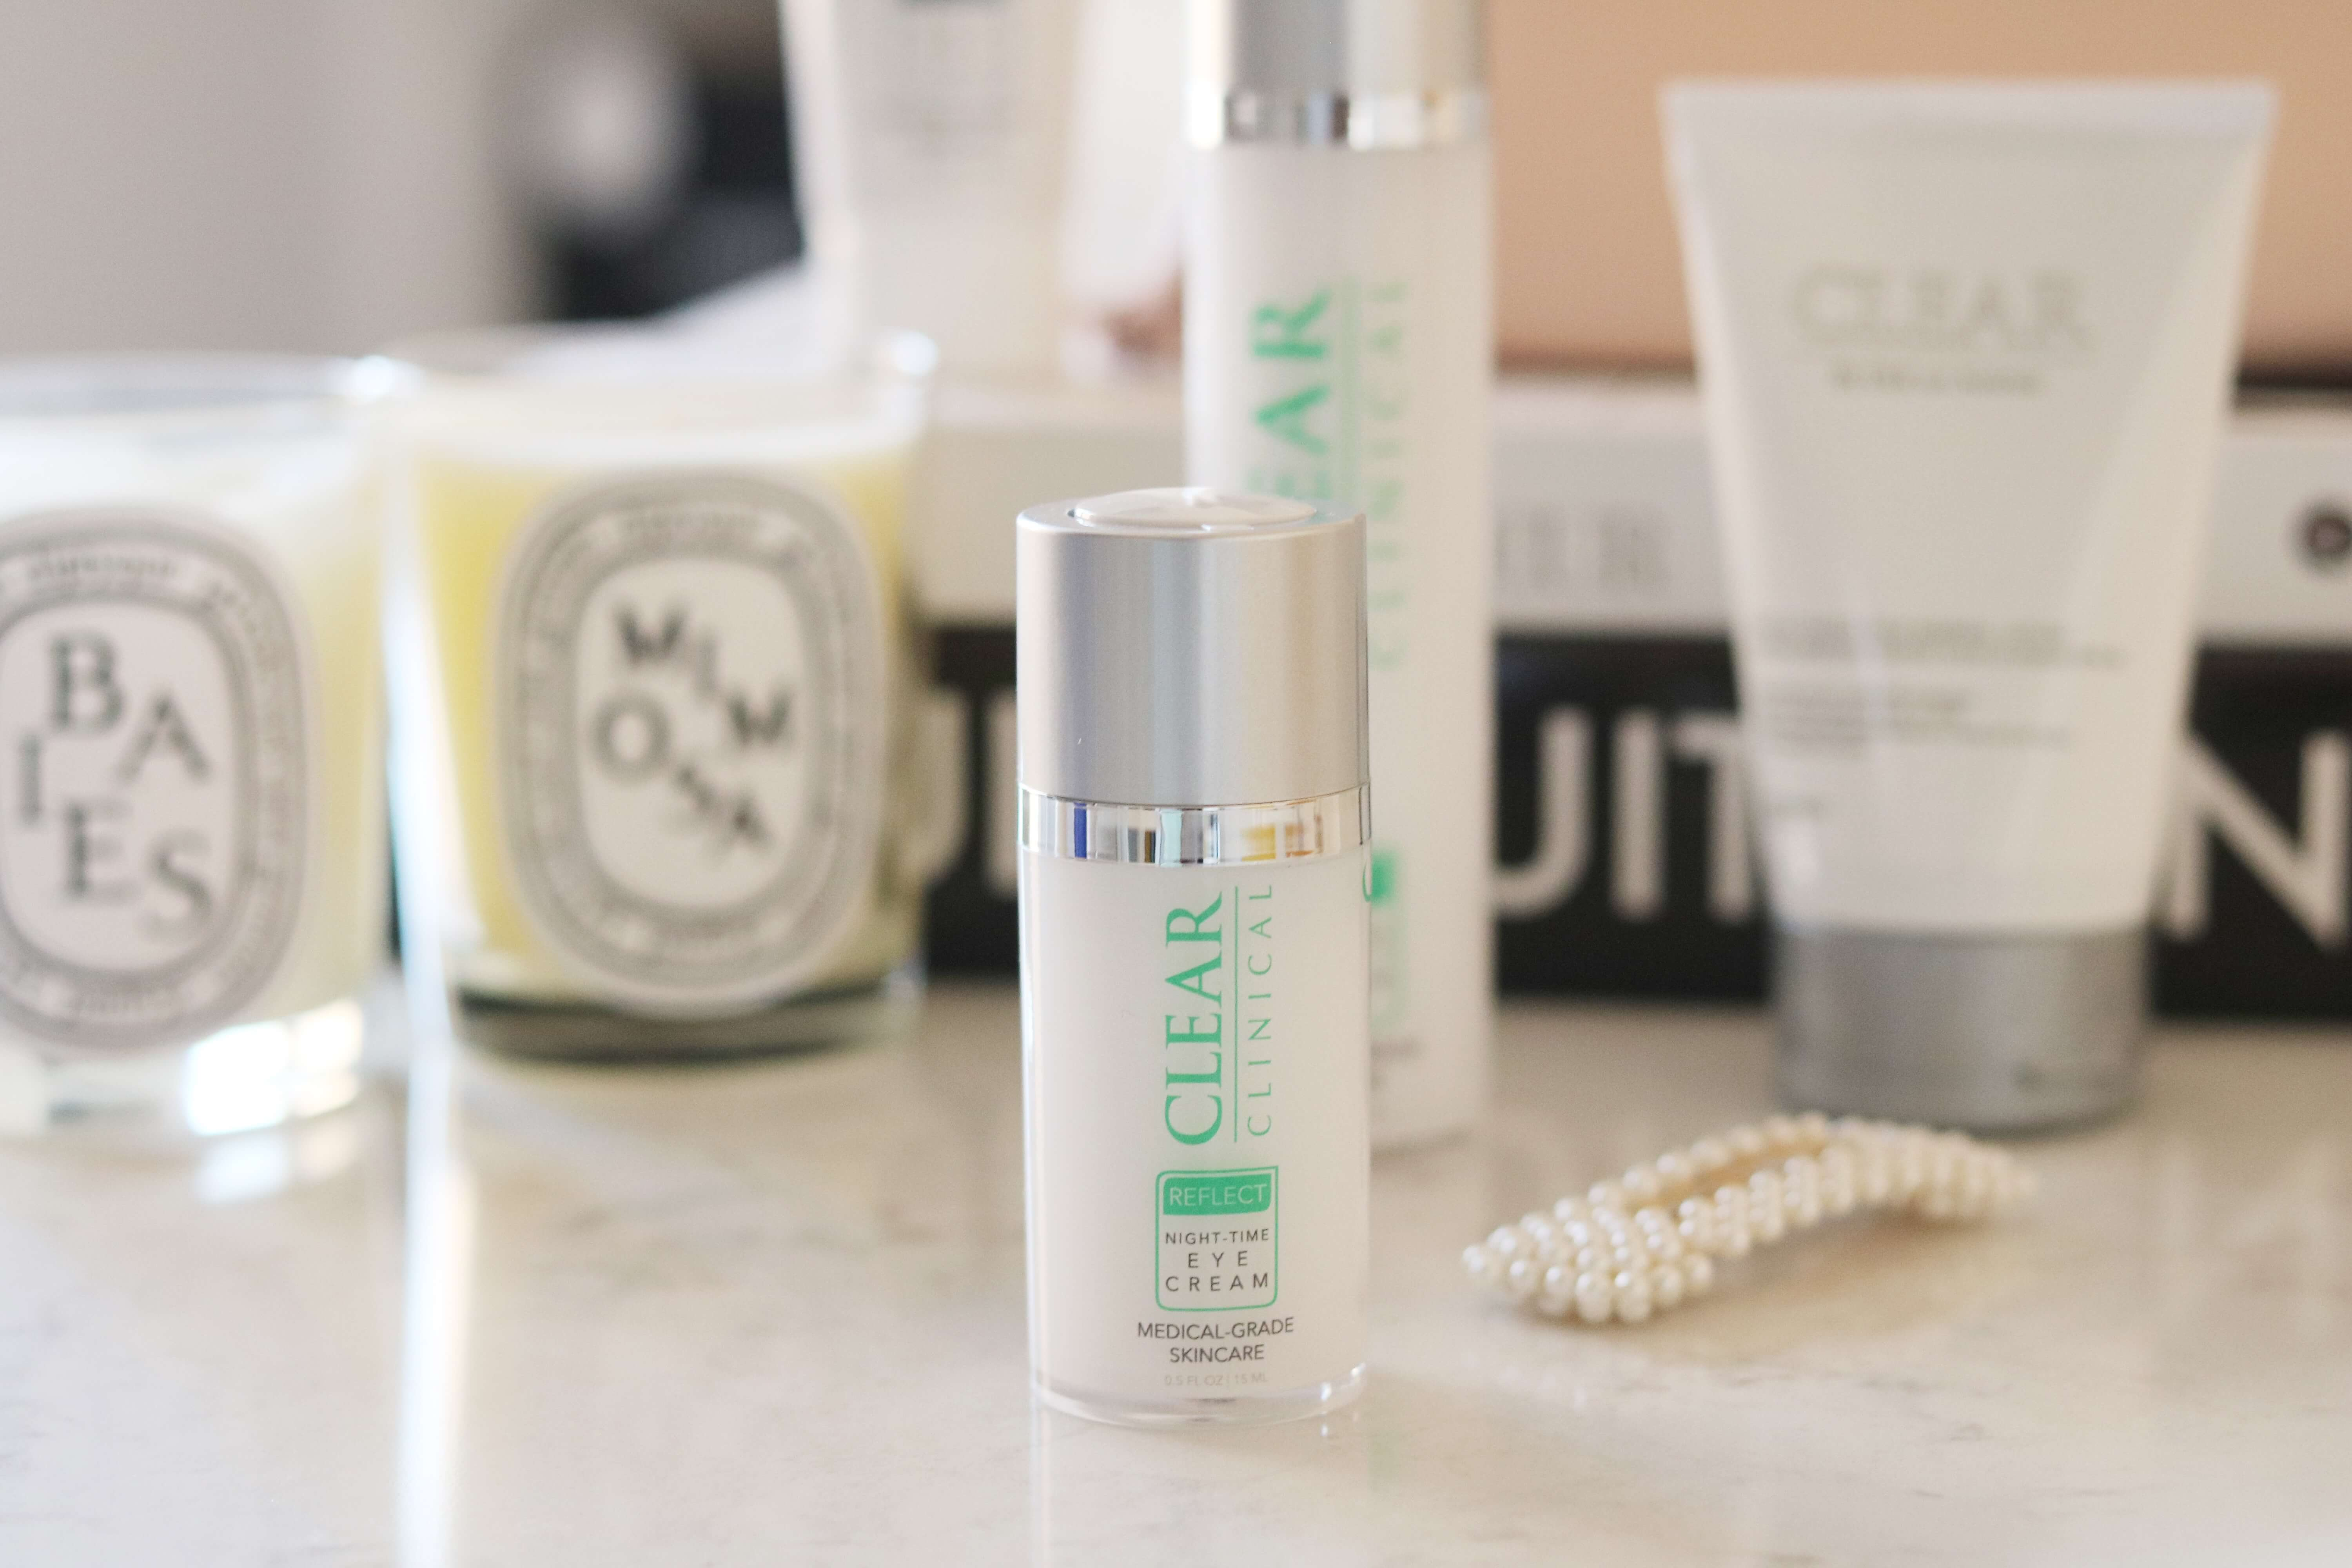 Clear Clinical Skincare review; DLK on avenue review; clear clinical promo code